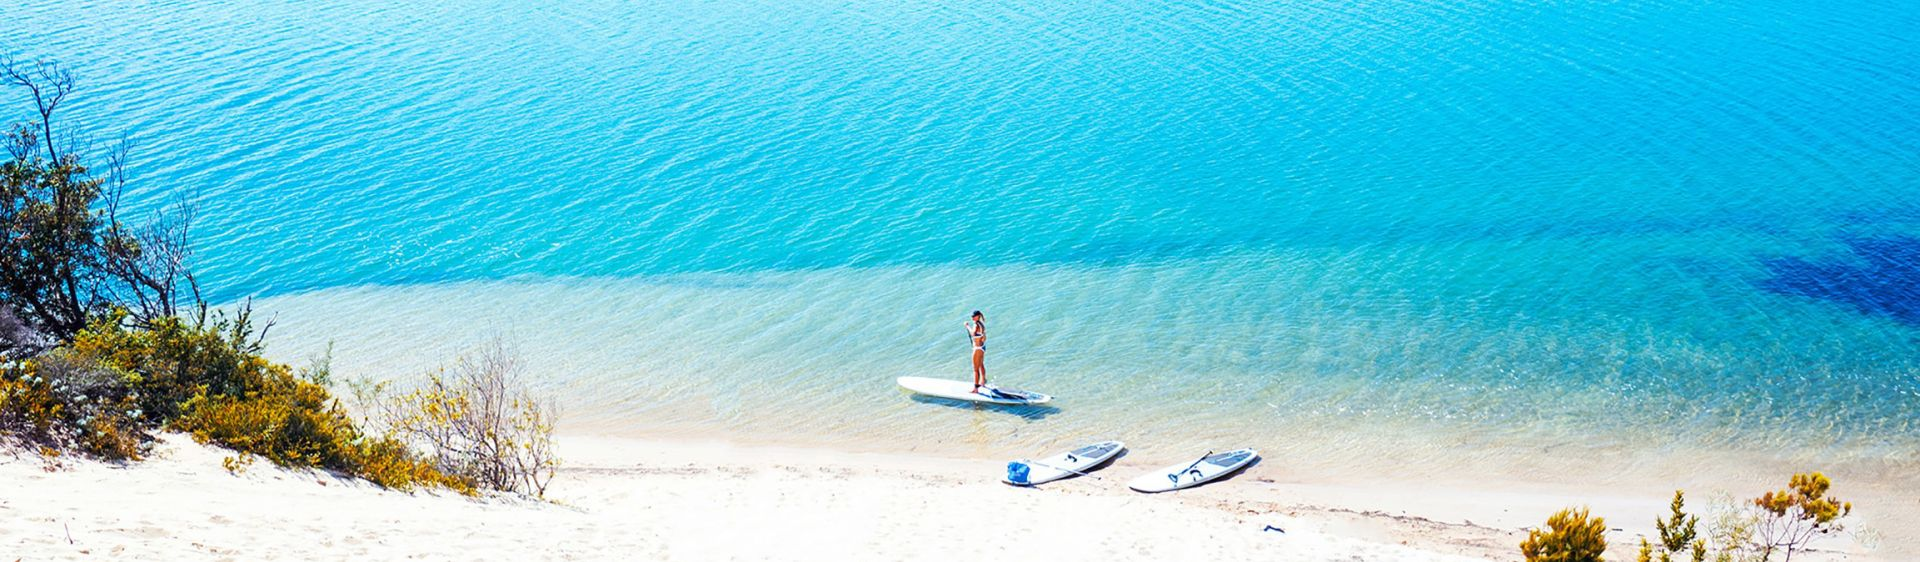 Stand-up paddleboarding on aqua blue waters, Wooli Wooli River